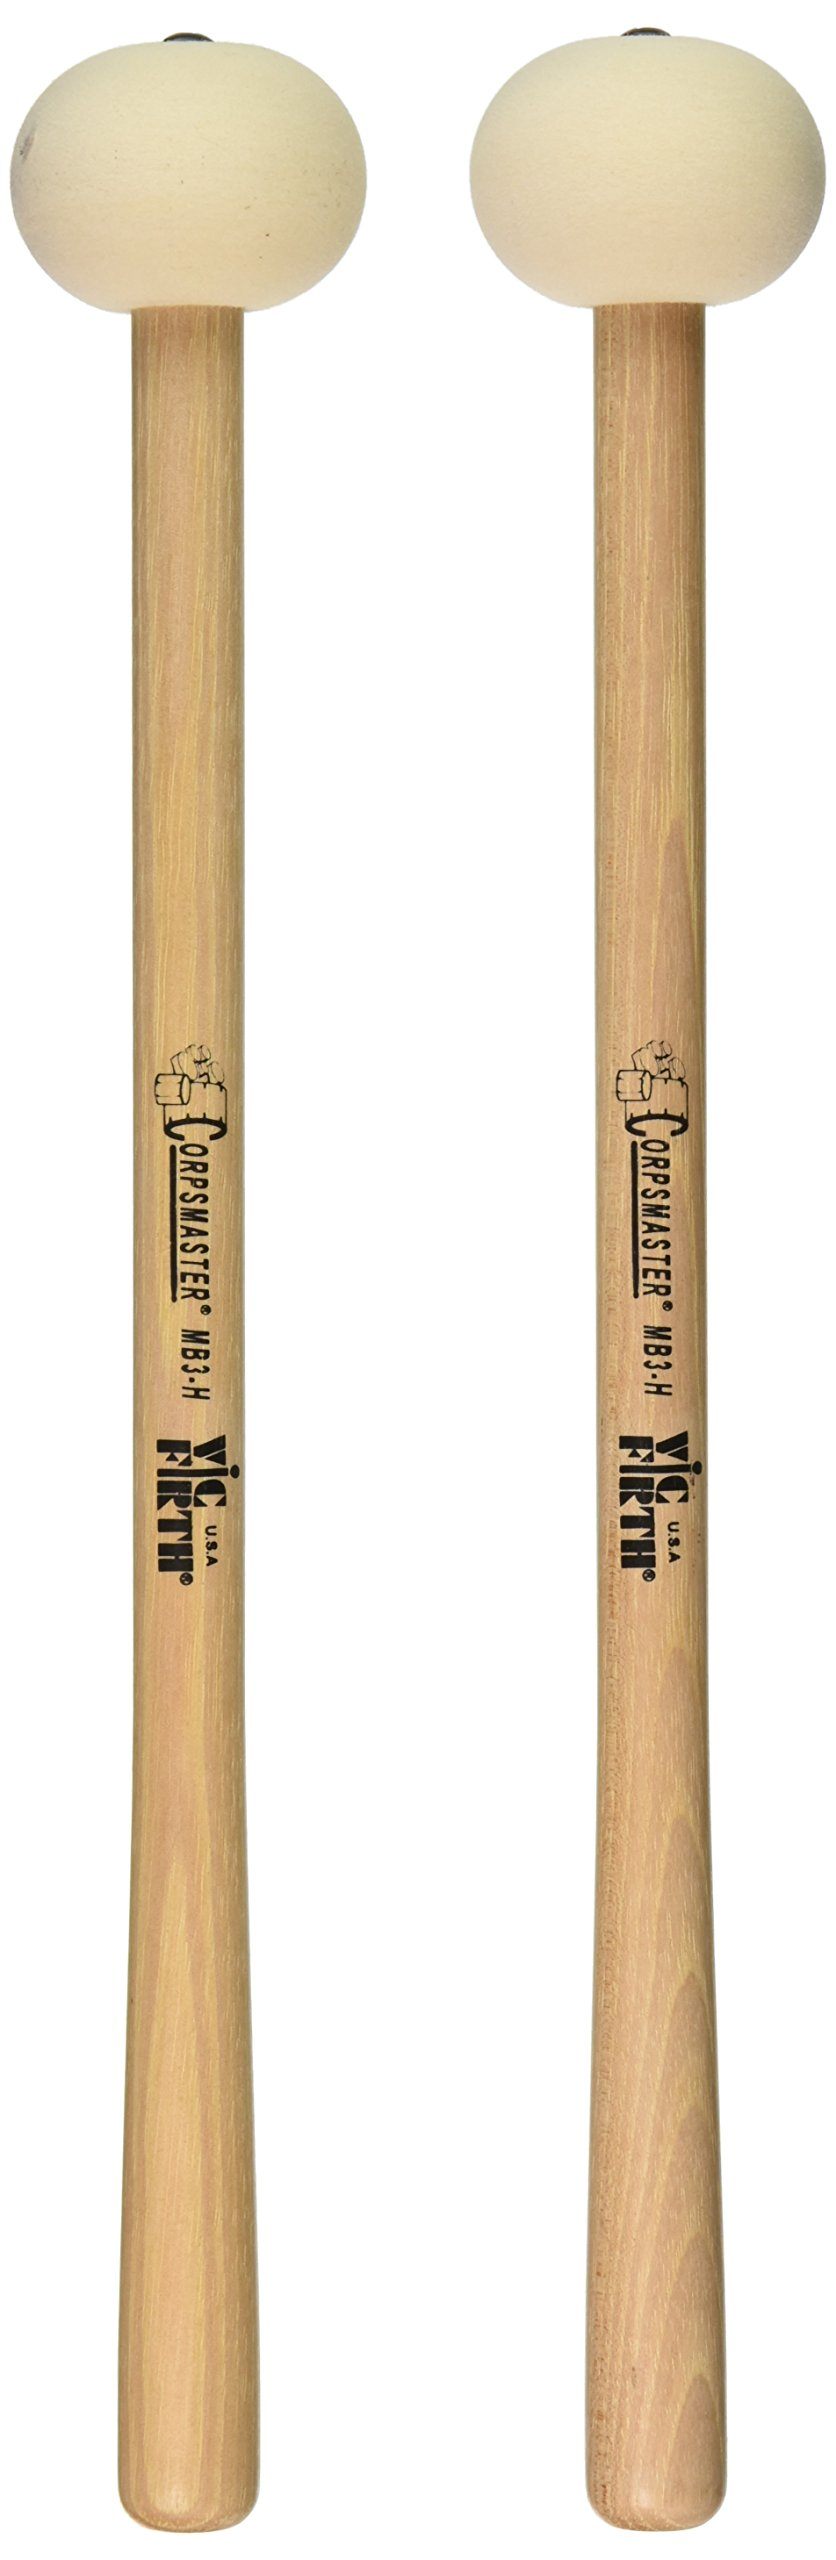 Best Rated in Drum & Percussion Mallets & Helpful Customer ...